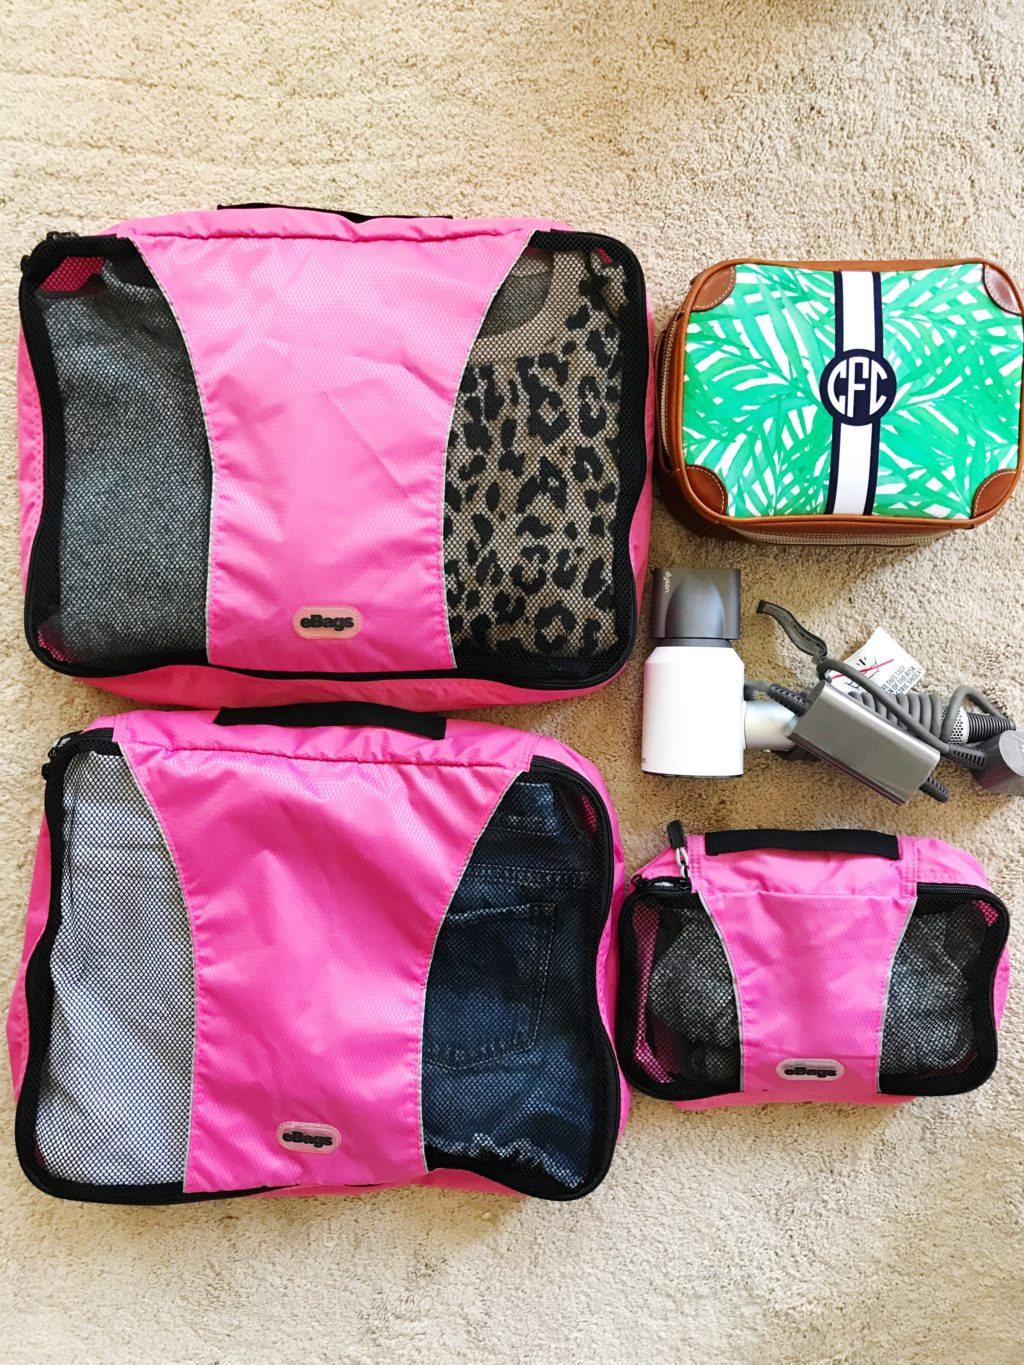 how to pack ebags in your carry on luggage